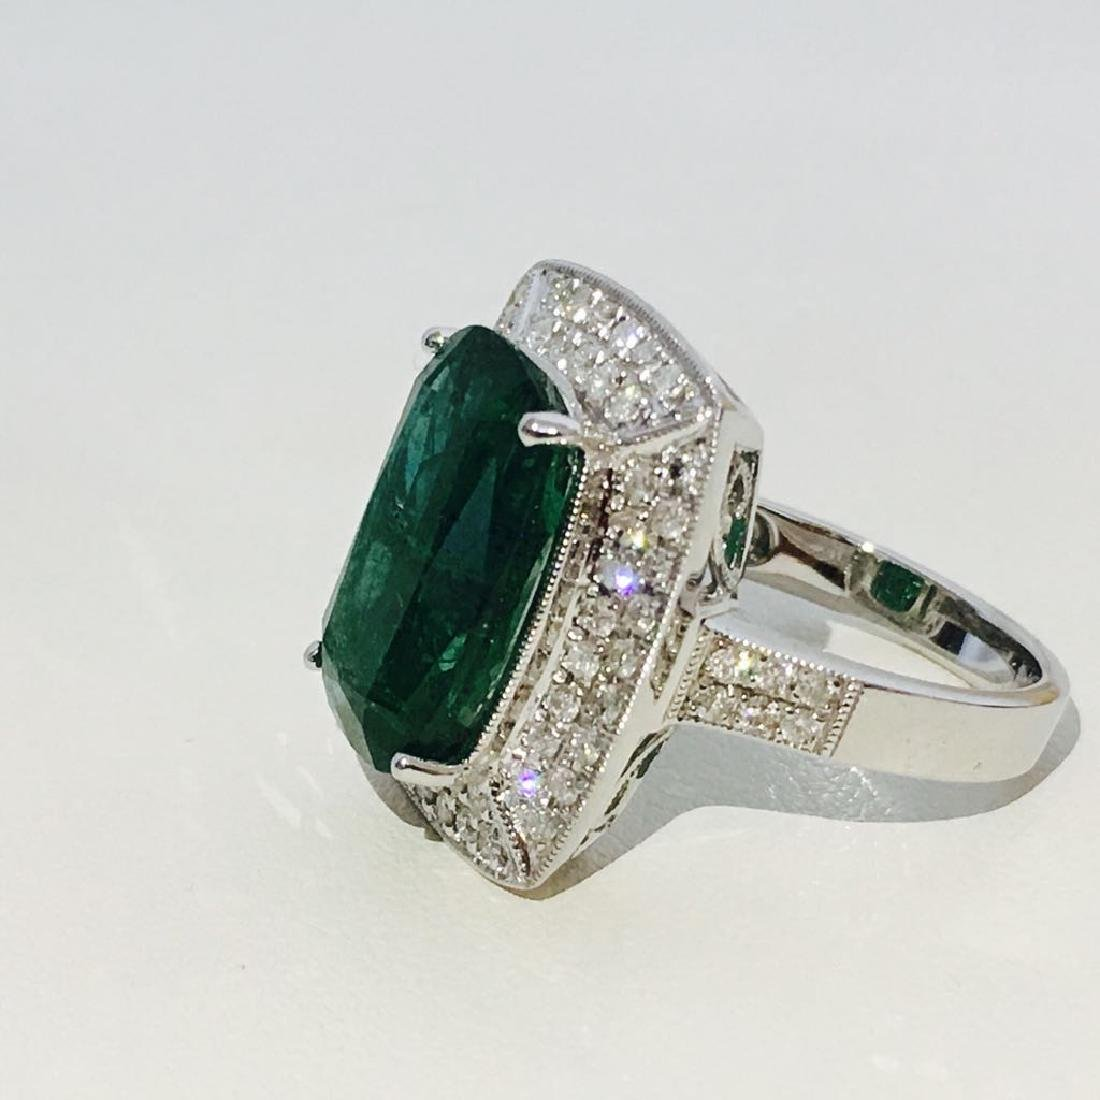 14K Gold, 100% natural 7.25 CT Emerald and Diamond Ring - 4